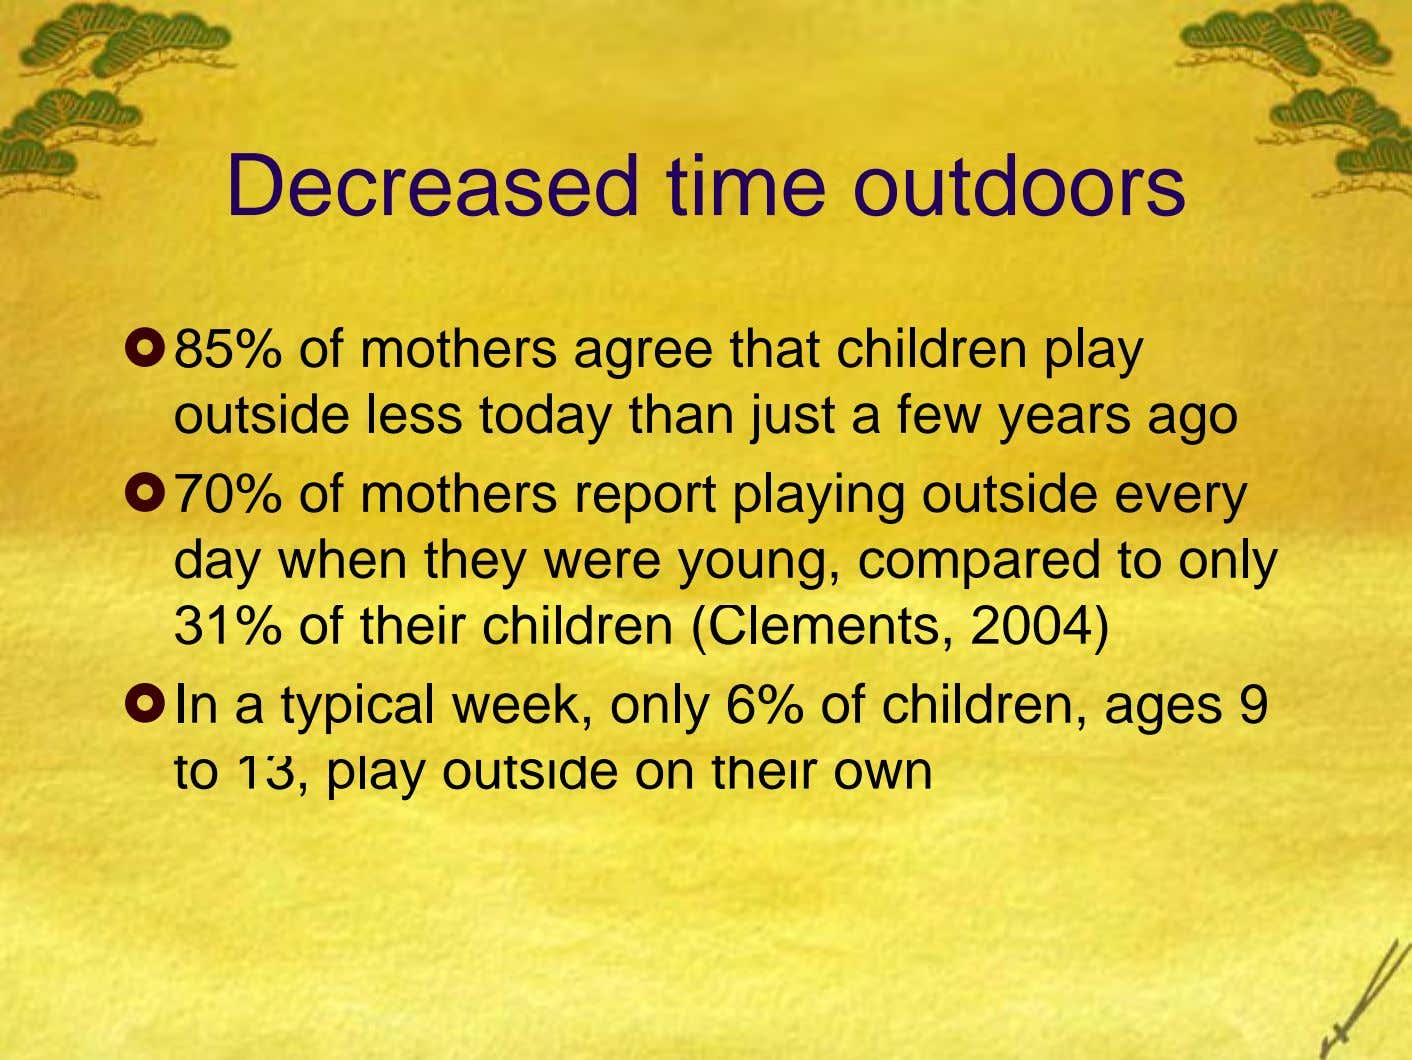 Decreased time outdoors 85% of mothers agree that children play outside less today than just a